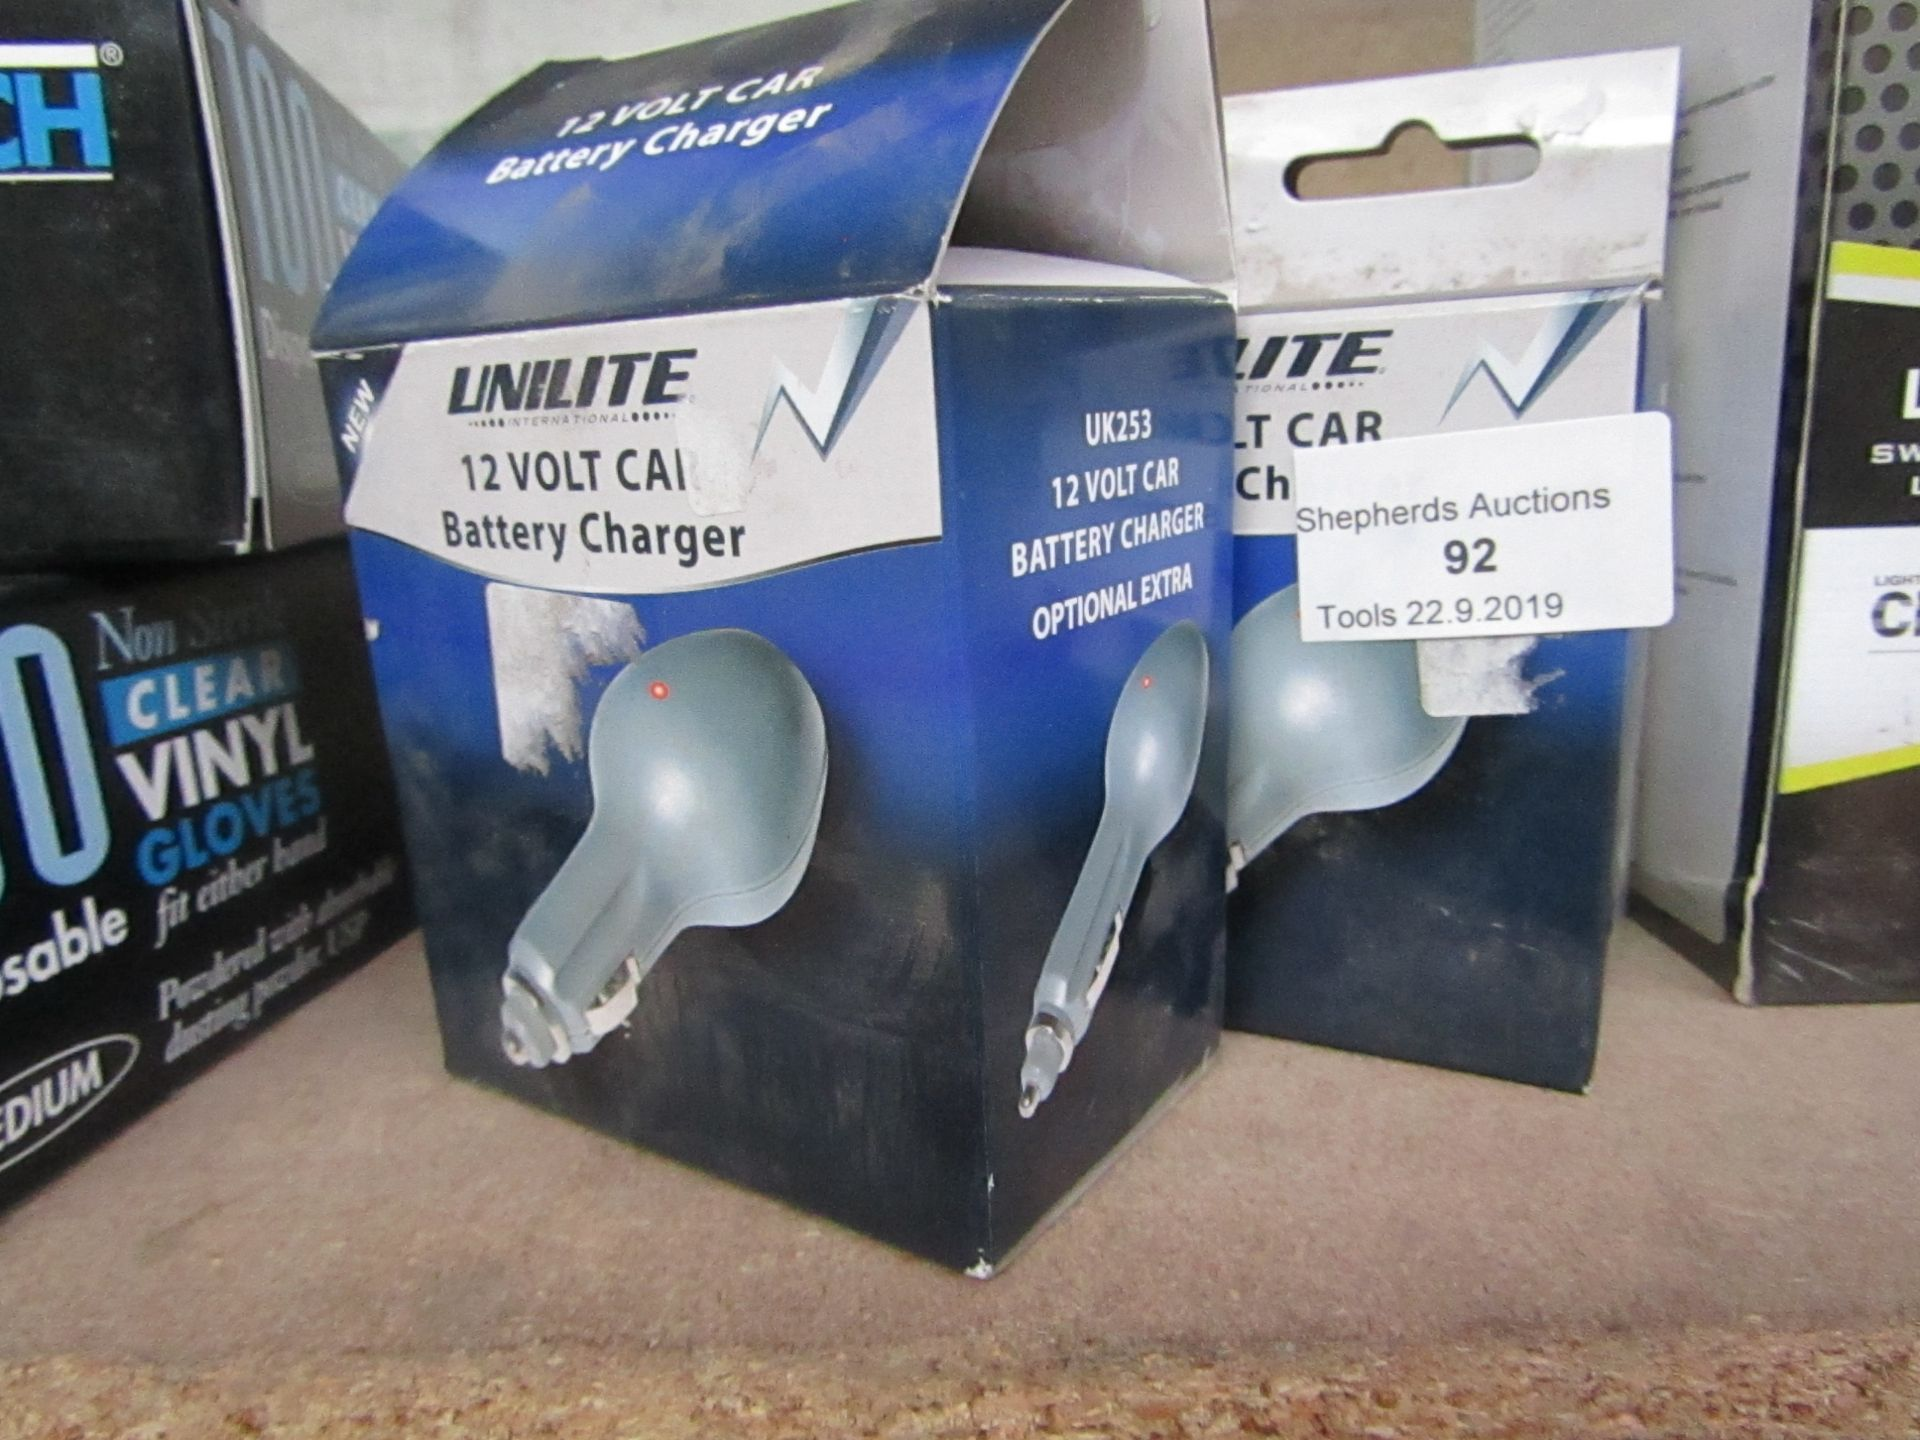 Lot 92 - 2 x Unilite 12 Volt Car Battery Charger